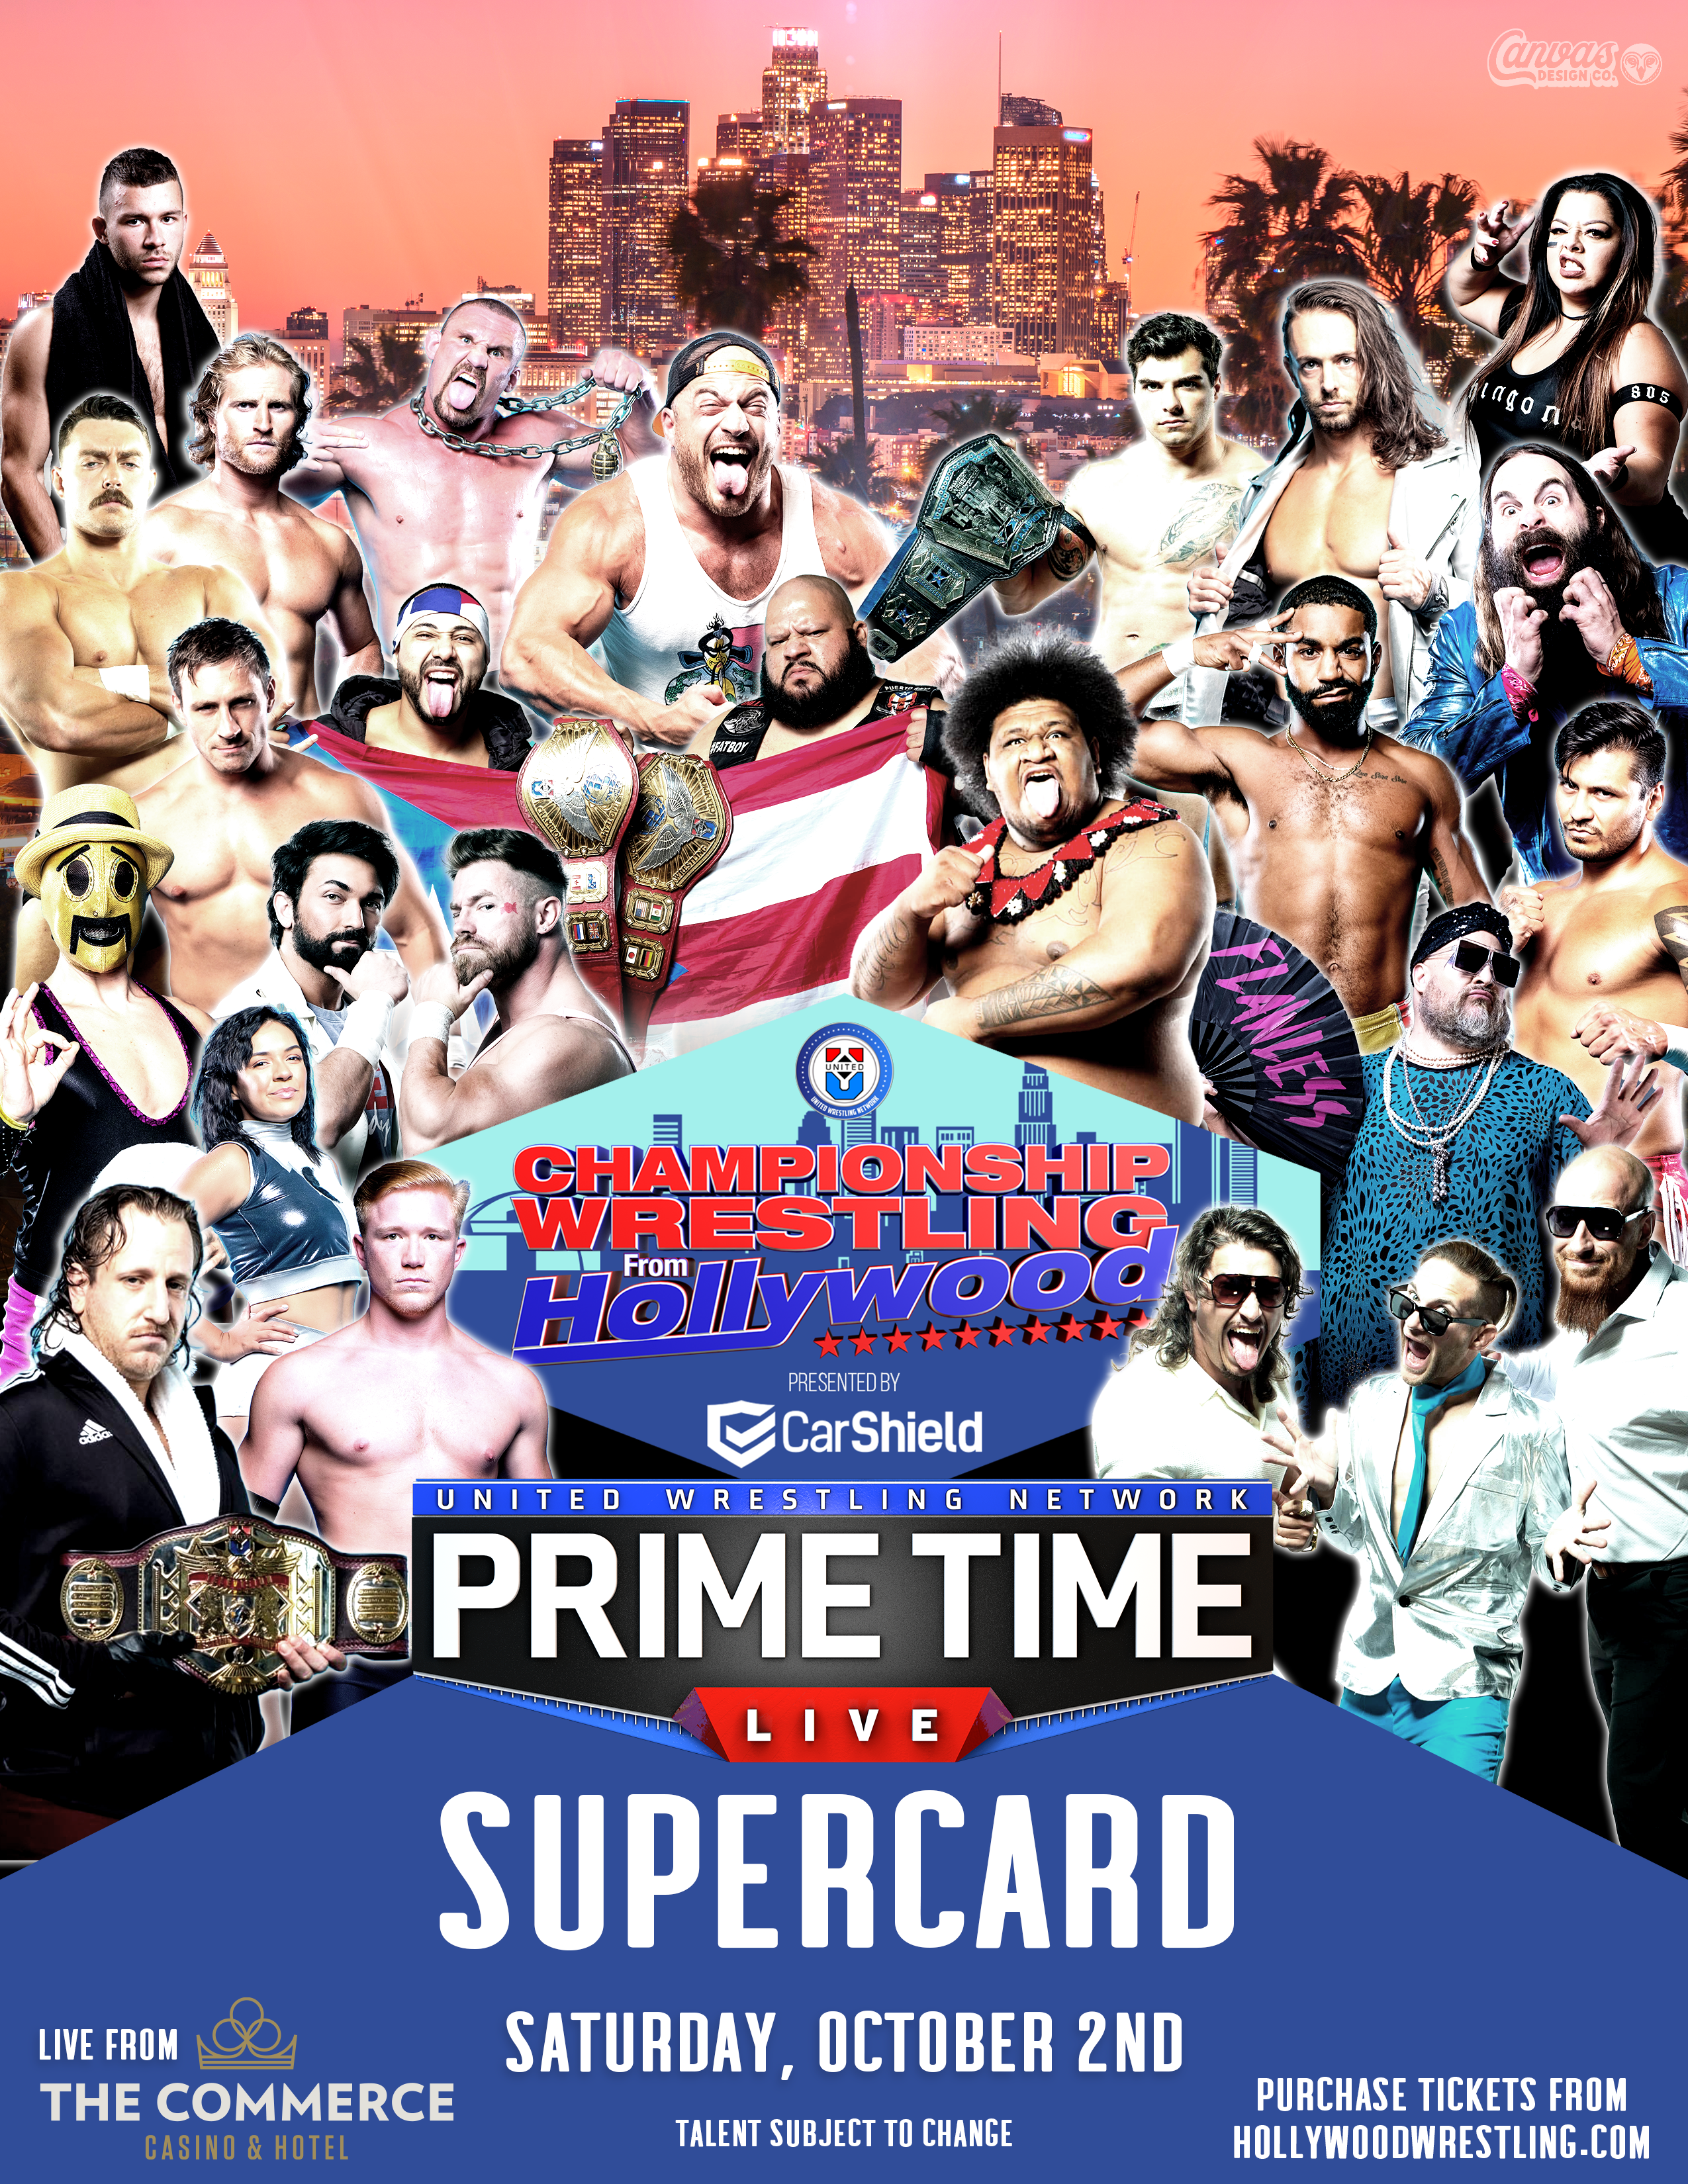 PRIMETIME LIVE AND CHAMPIONSHIP WRESTLING FROM HOLLYWOOD RETURN WITH MULTI-EVENT DEAL AT COMMERCE CASINO